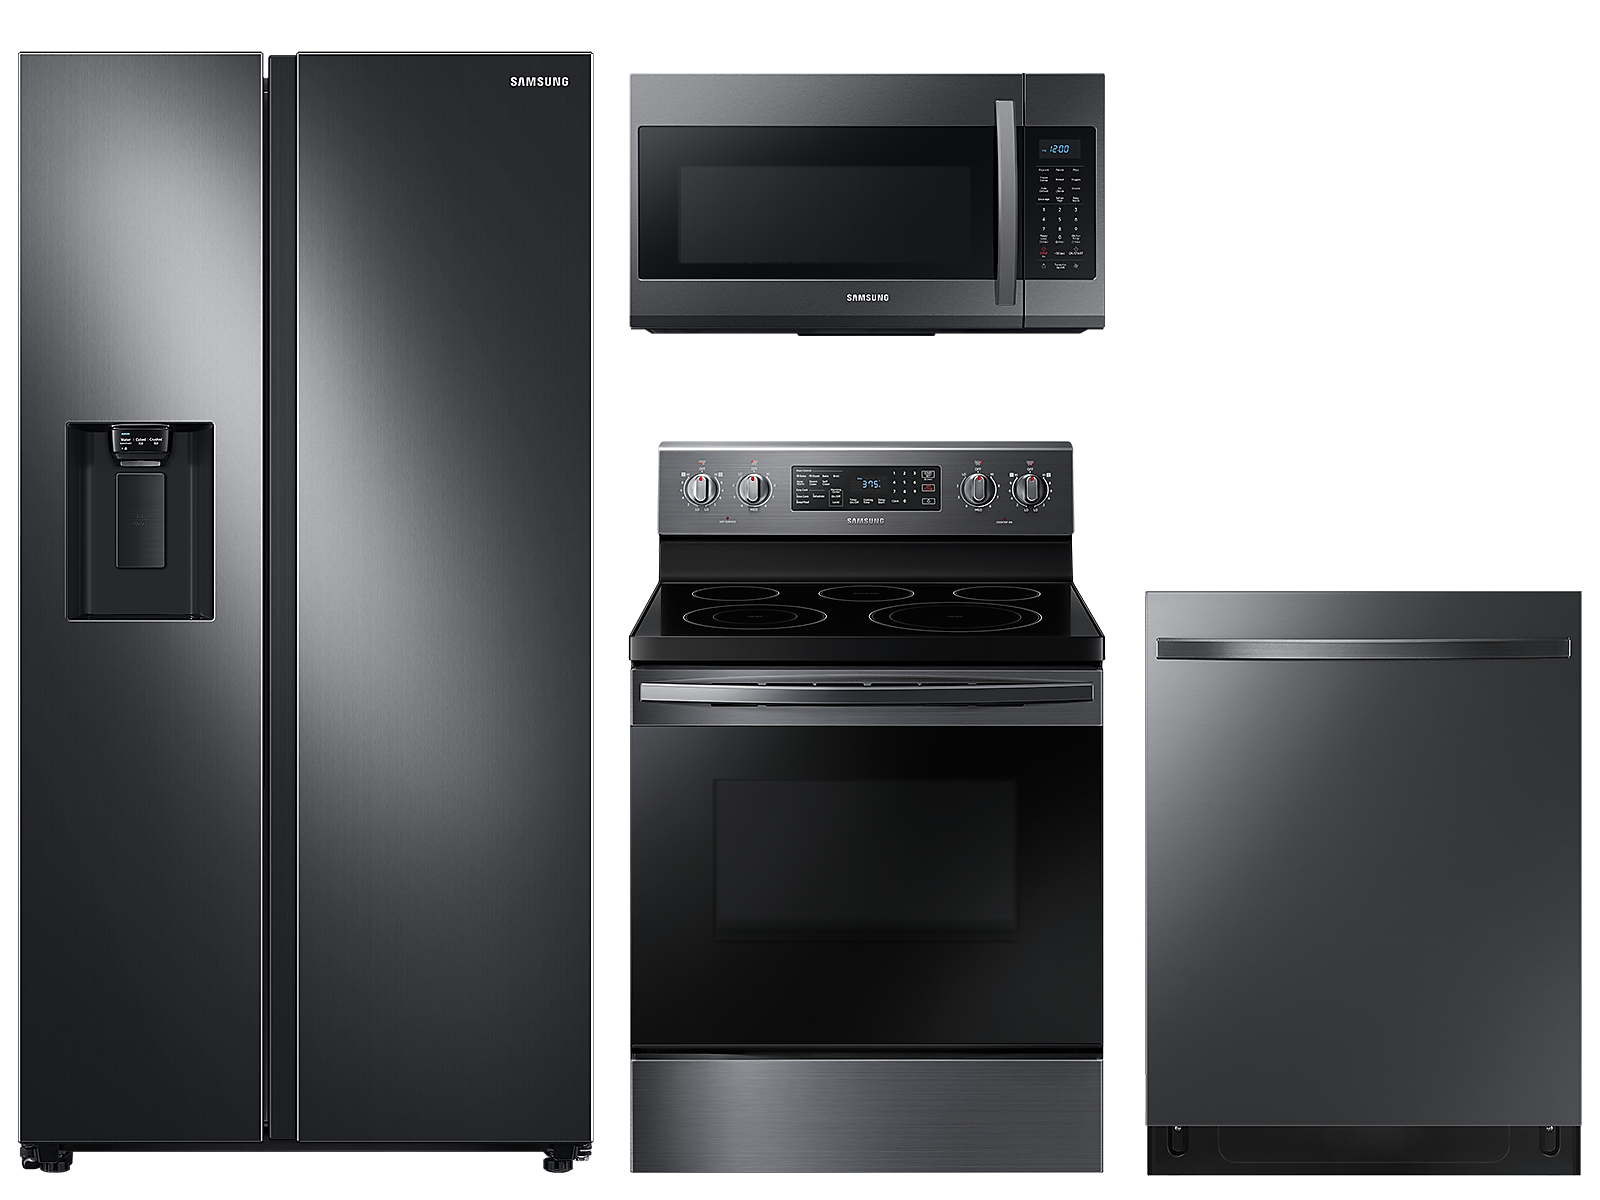 Samsung coupon: Samsung Counter Depth Side-by-Side refrigerator & electric range package in Black stainless(BNDL-1590168995114)